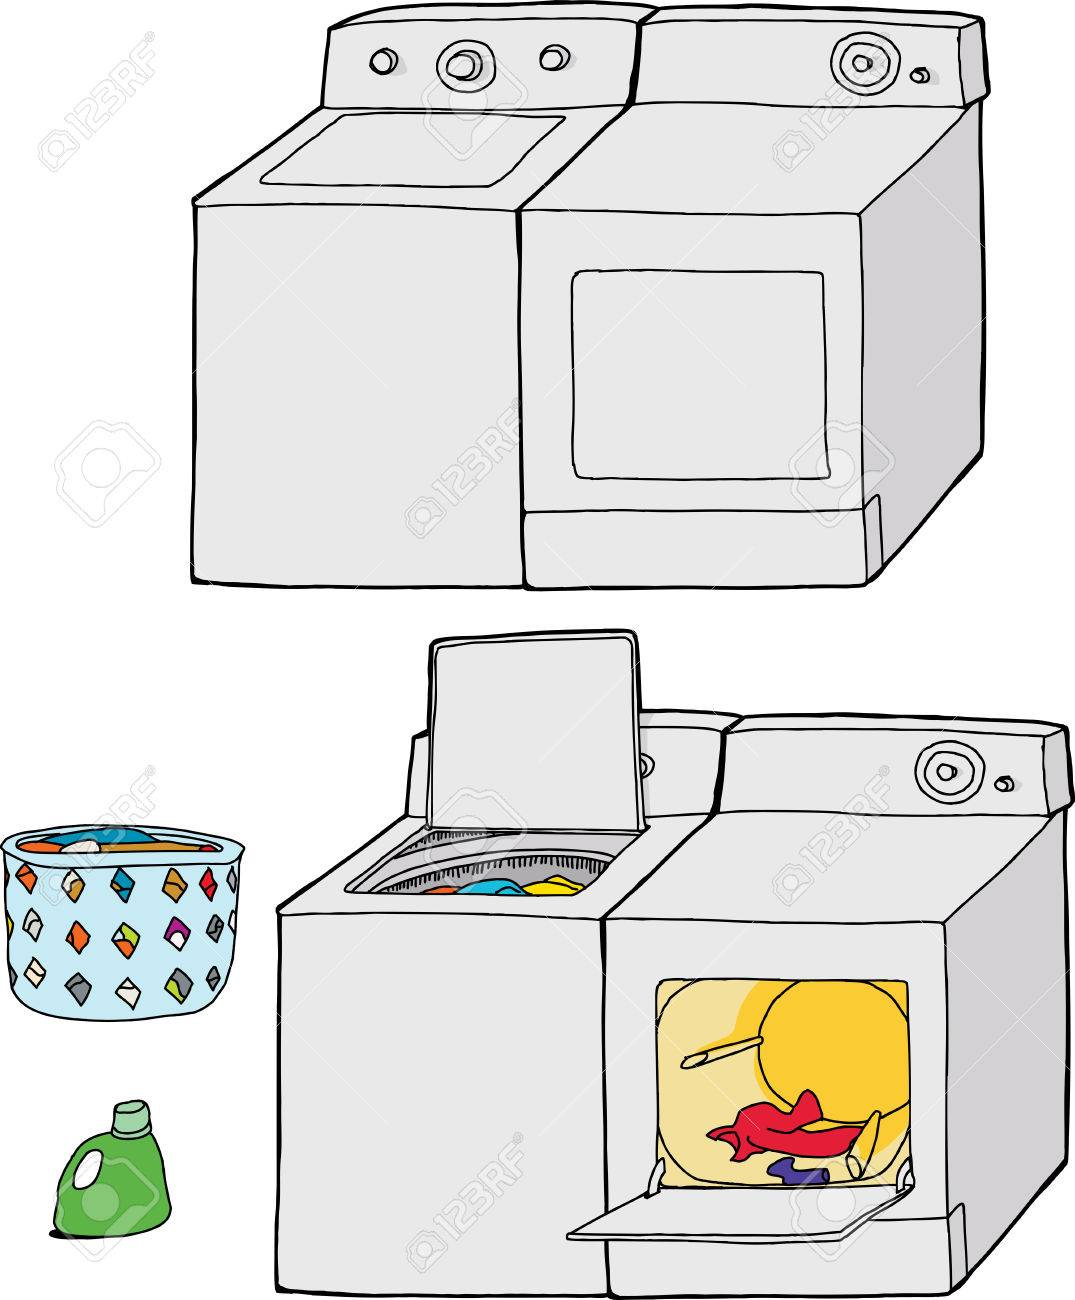 Washer And Dryer Clipart washing machine and dryer cartoons with soap and clothing royalty